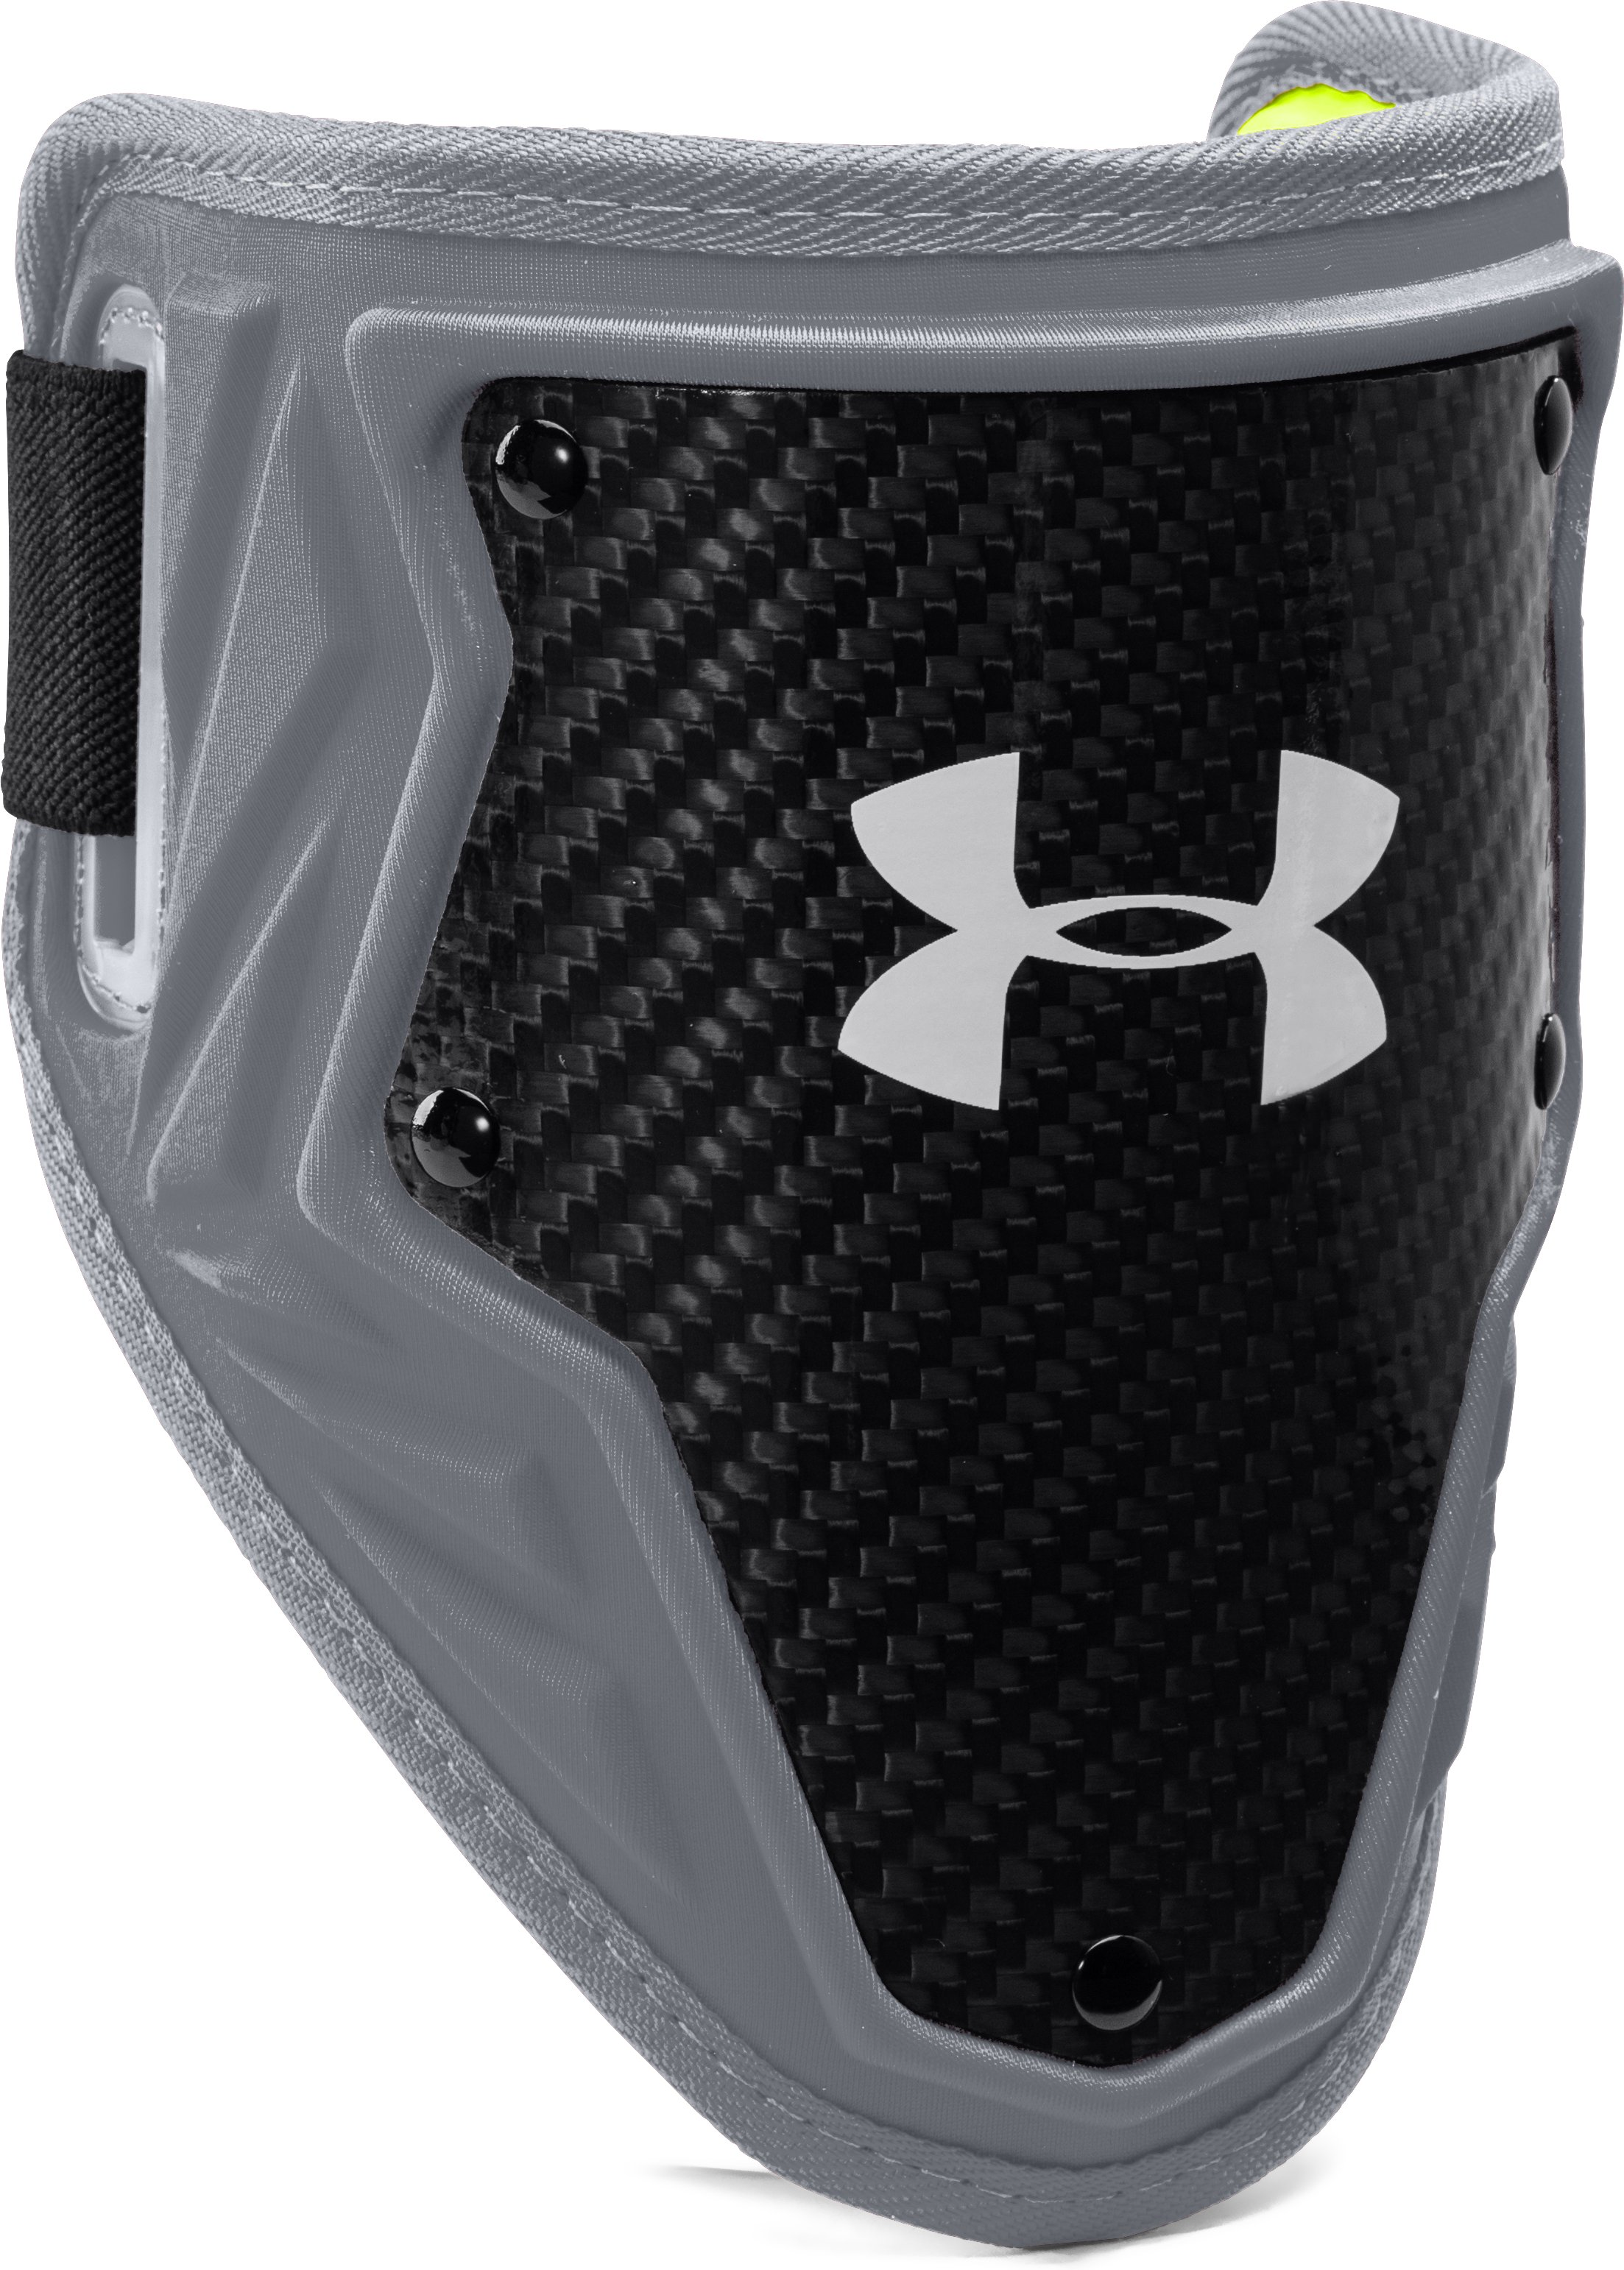 Men's UA Batter's Elbow Guard, Steel